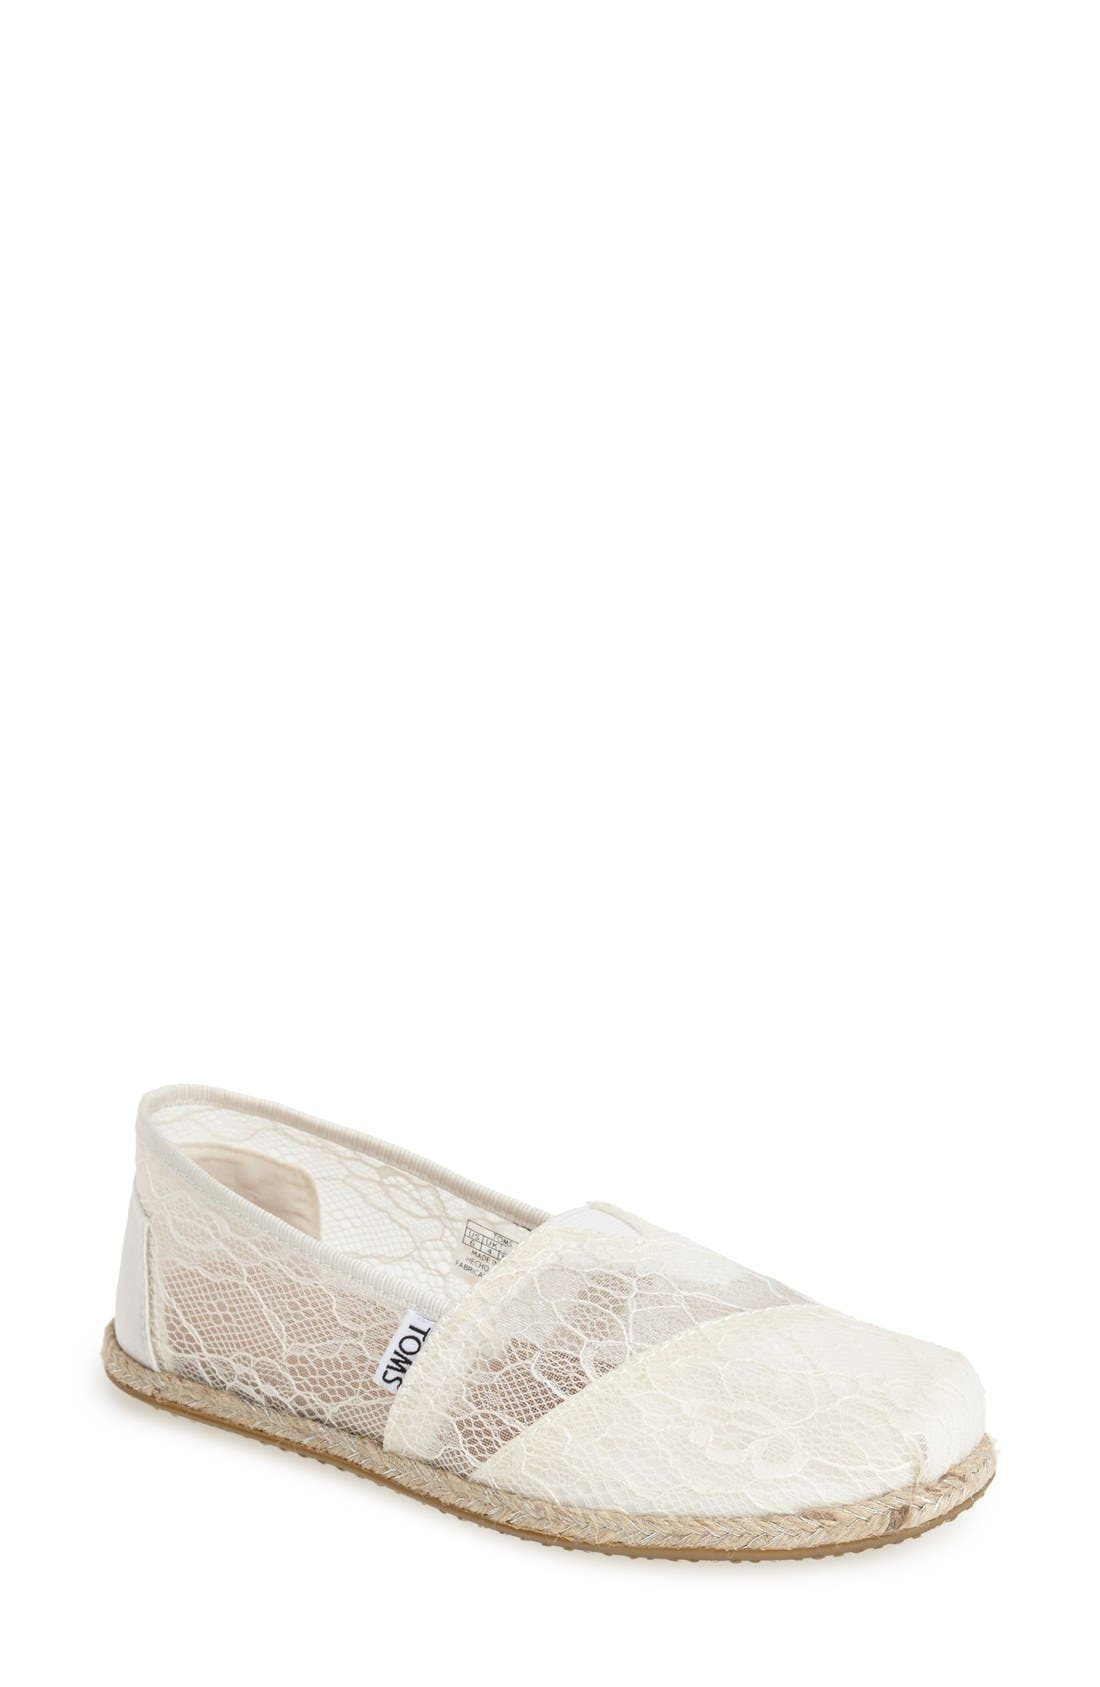 Alternate Image 1 Selected - TOMS 'Classic - Lace' Wedding Slip-On (Women)